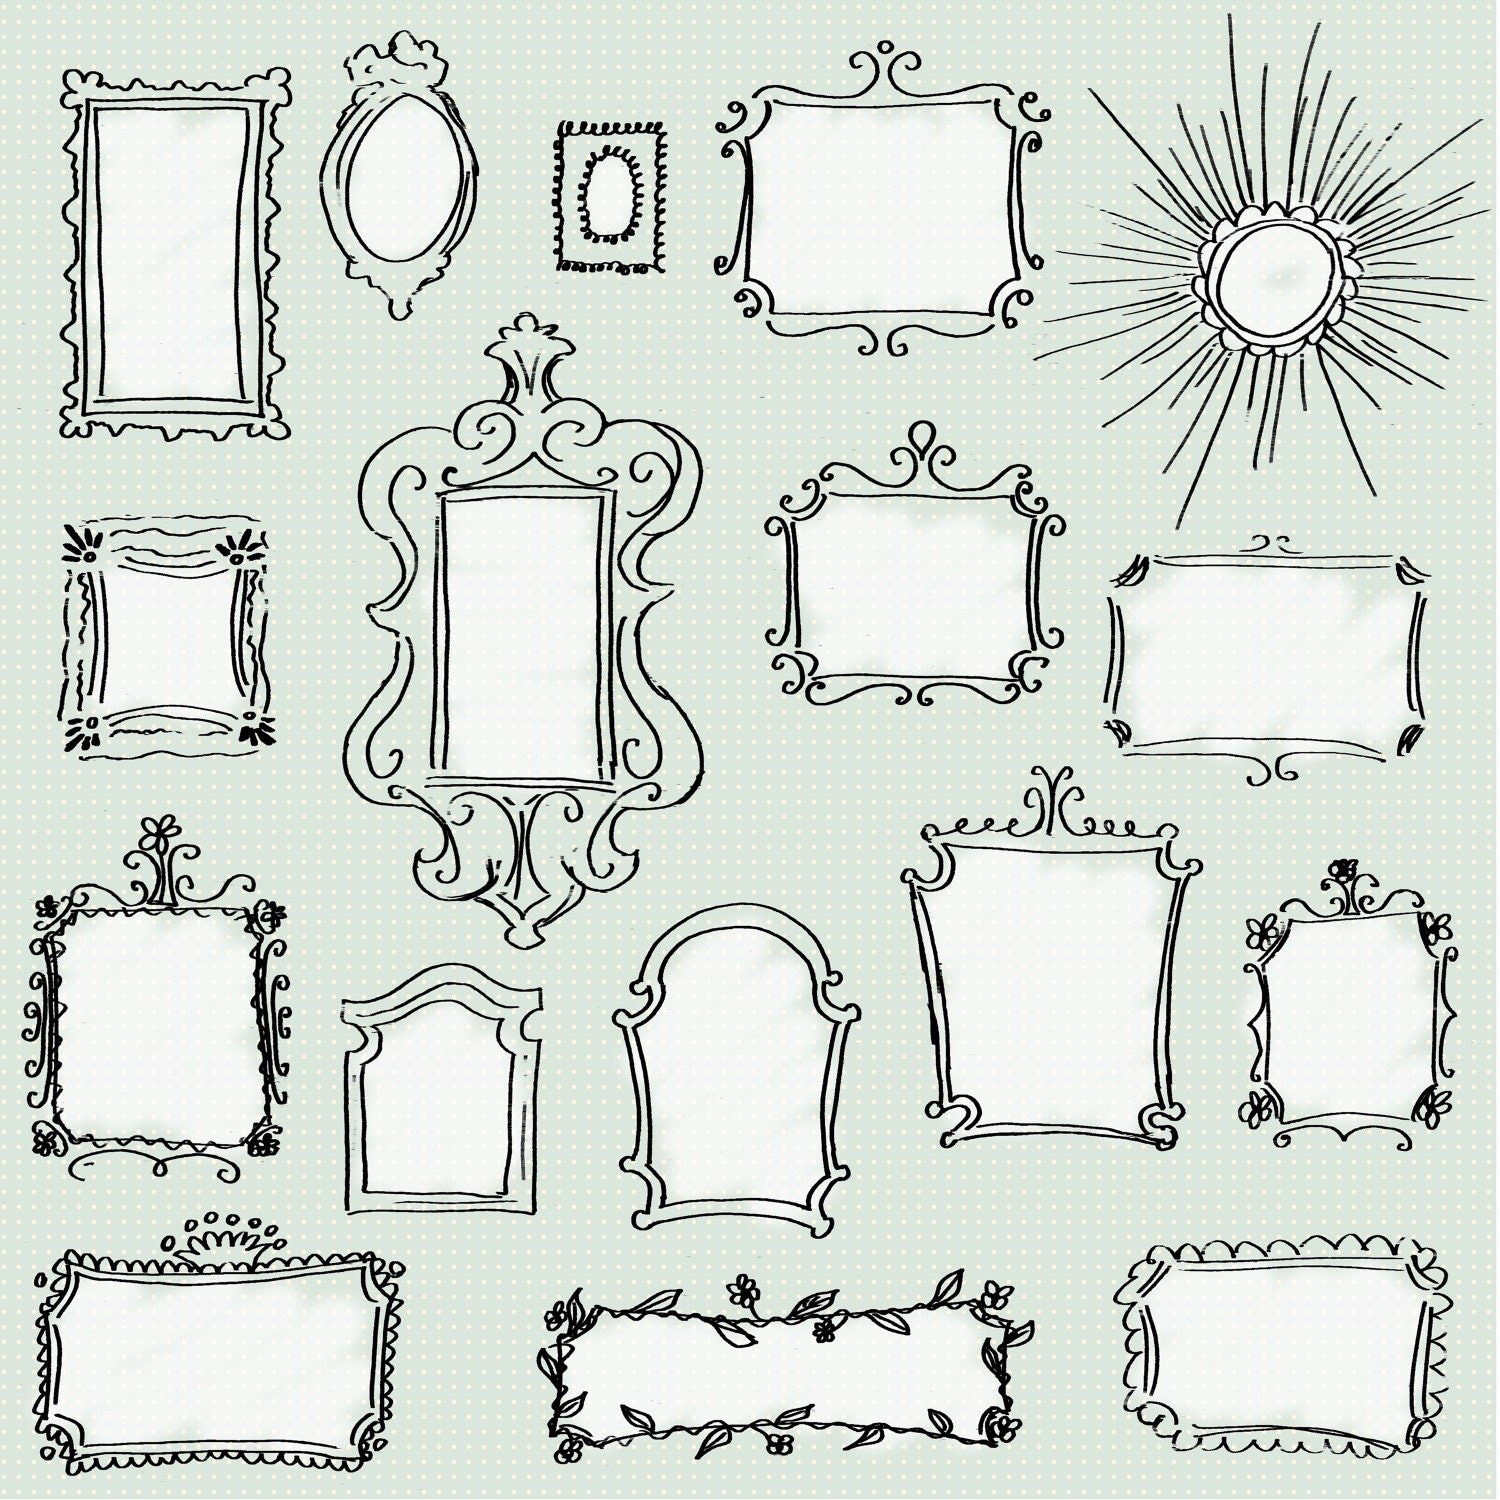 CLIP ART: Doodle Frames Pack // Set of 17 Unique Hand-drawn